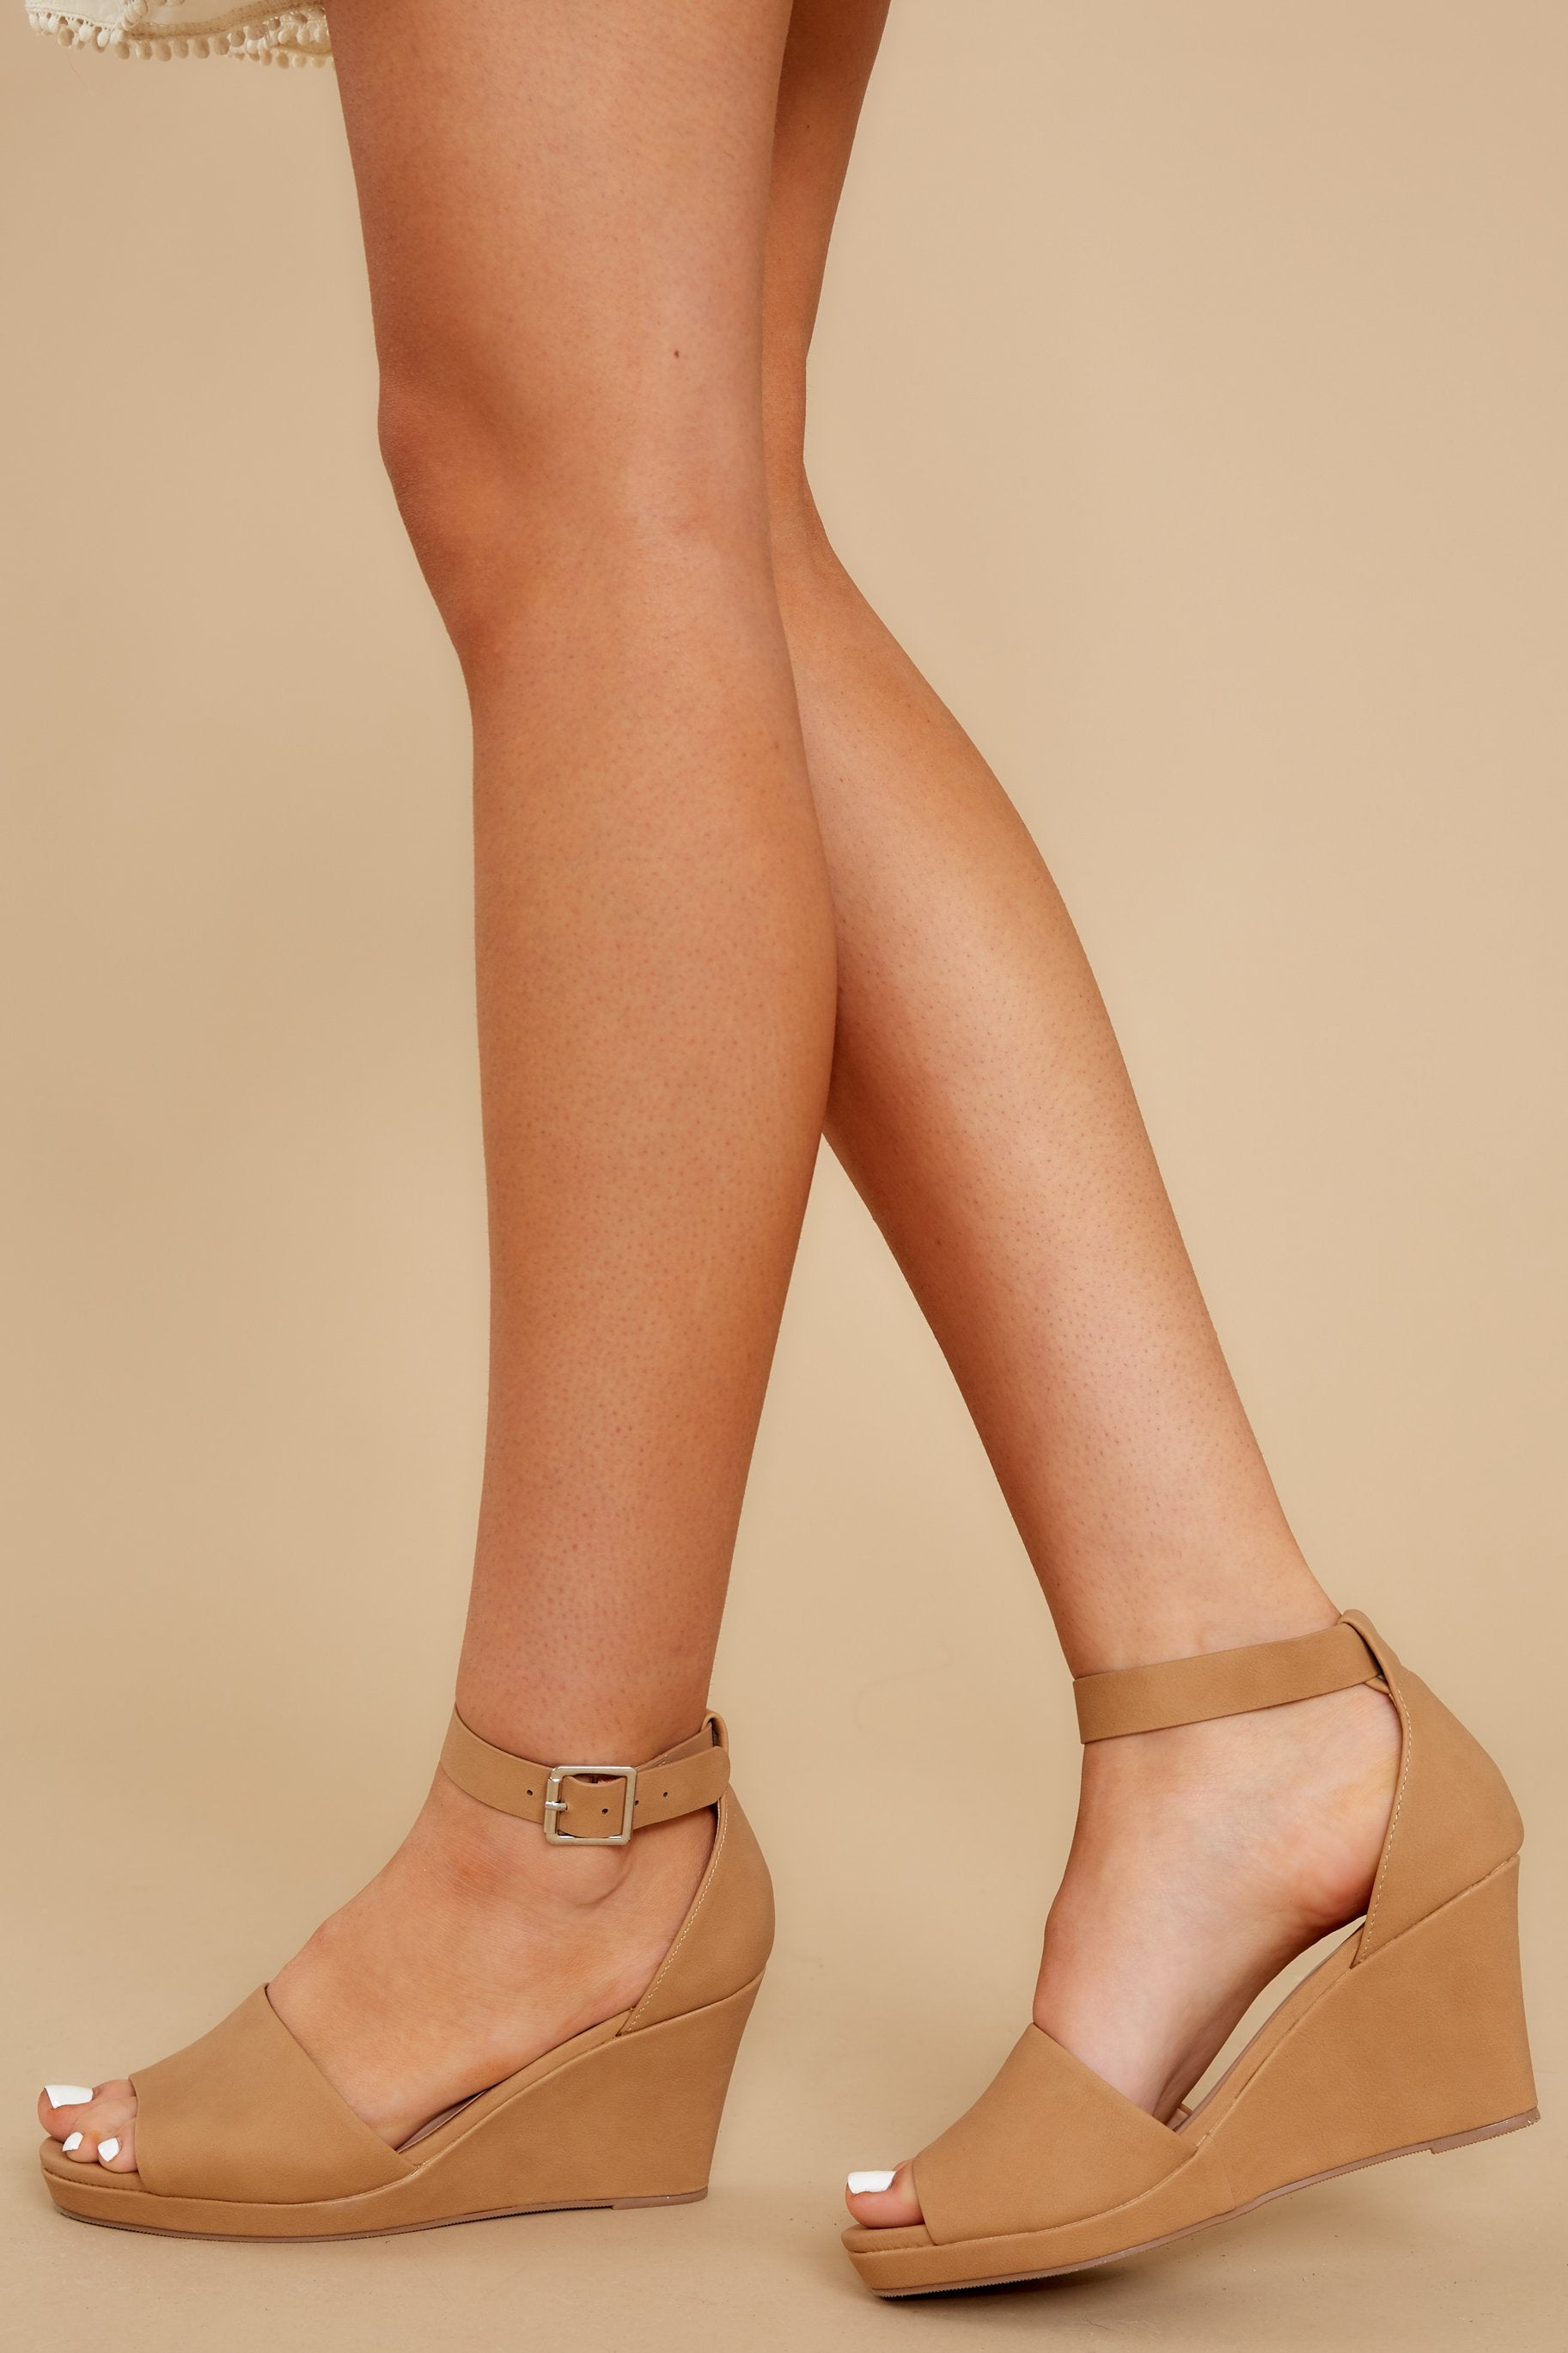 pretty cool look out for promo codes Cute Beige Sandal Wedges - Vegan Leather Platform Wedges - Shoes ...